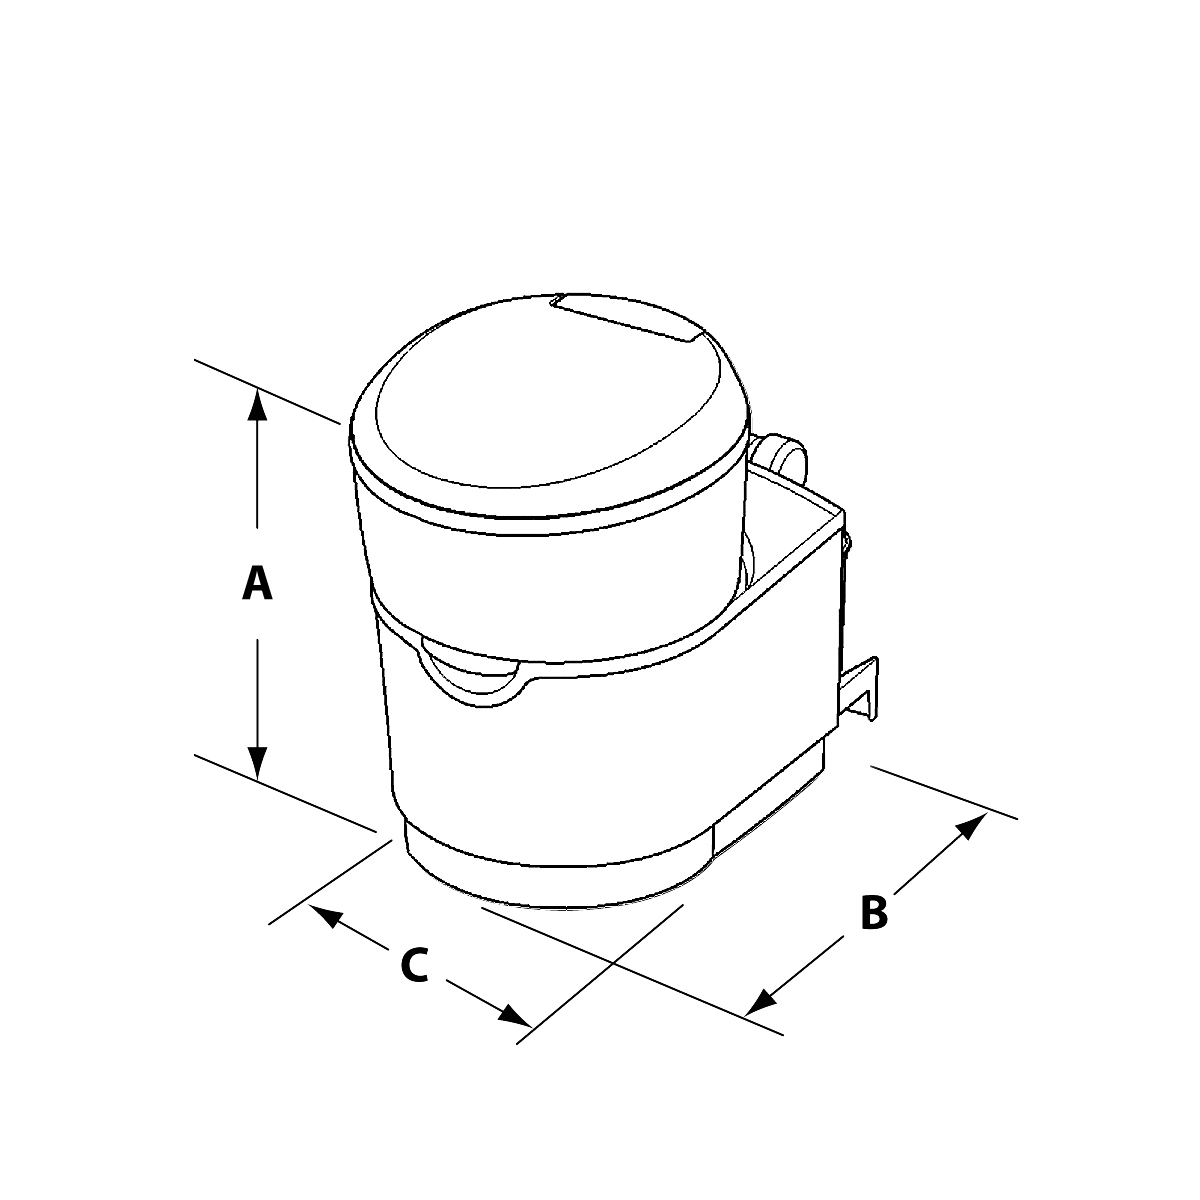 hight resolution of c223 s cassette toilet dimensions